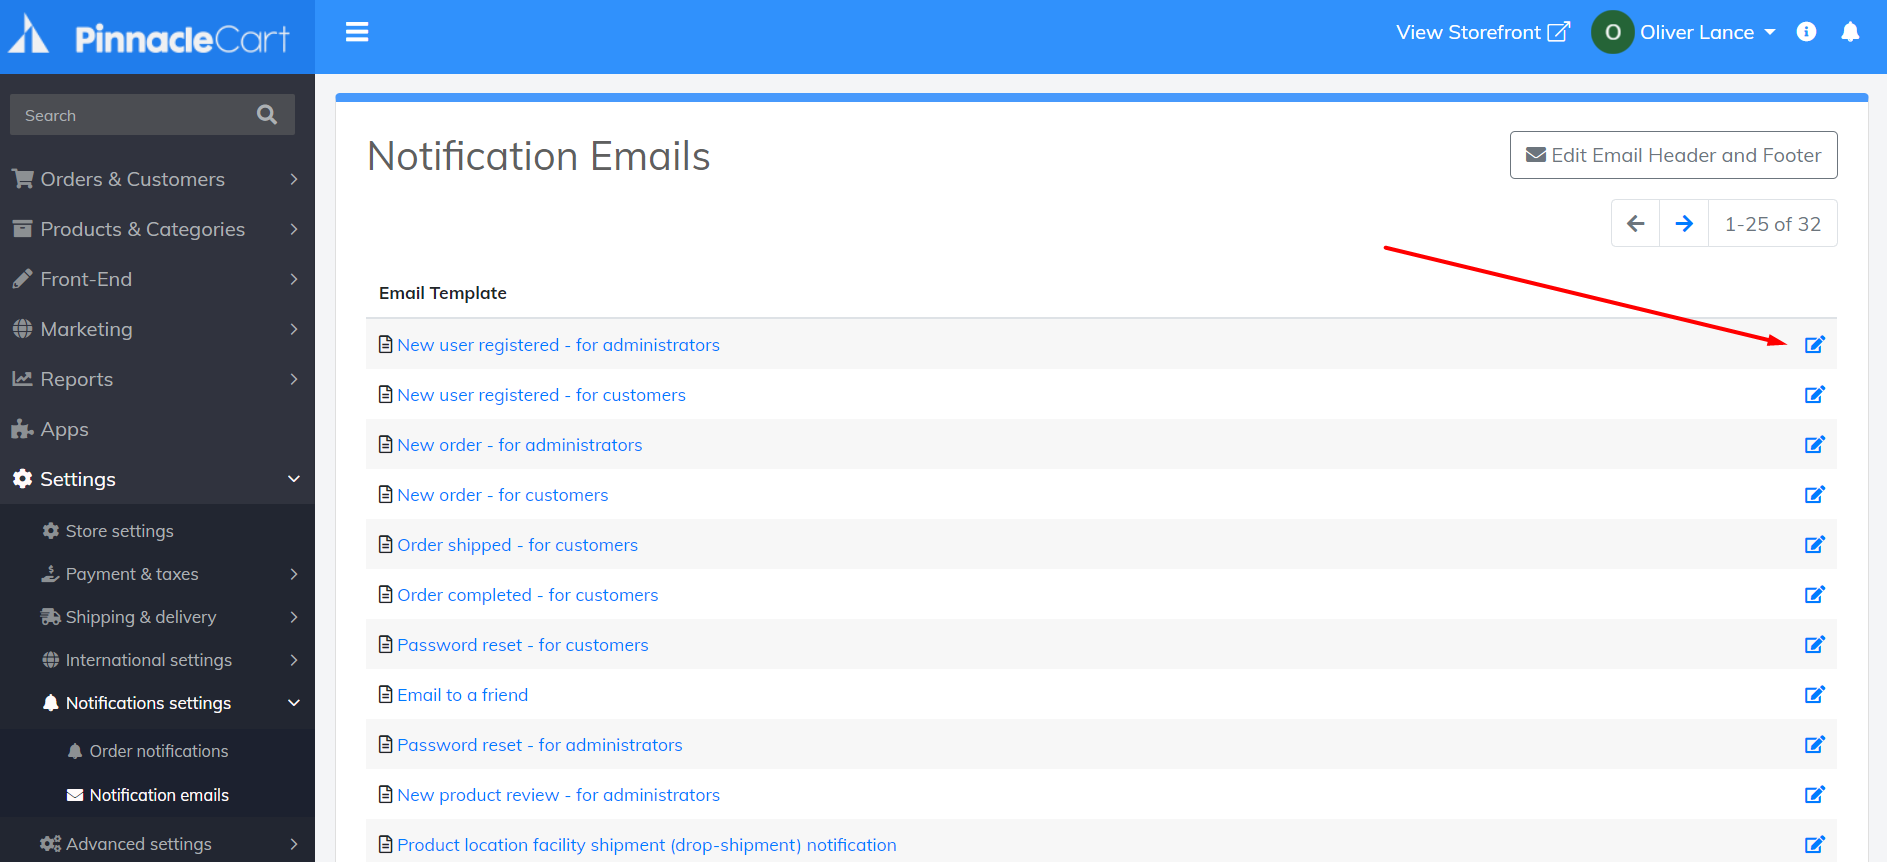 edit notification emails